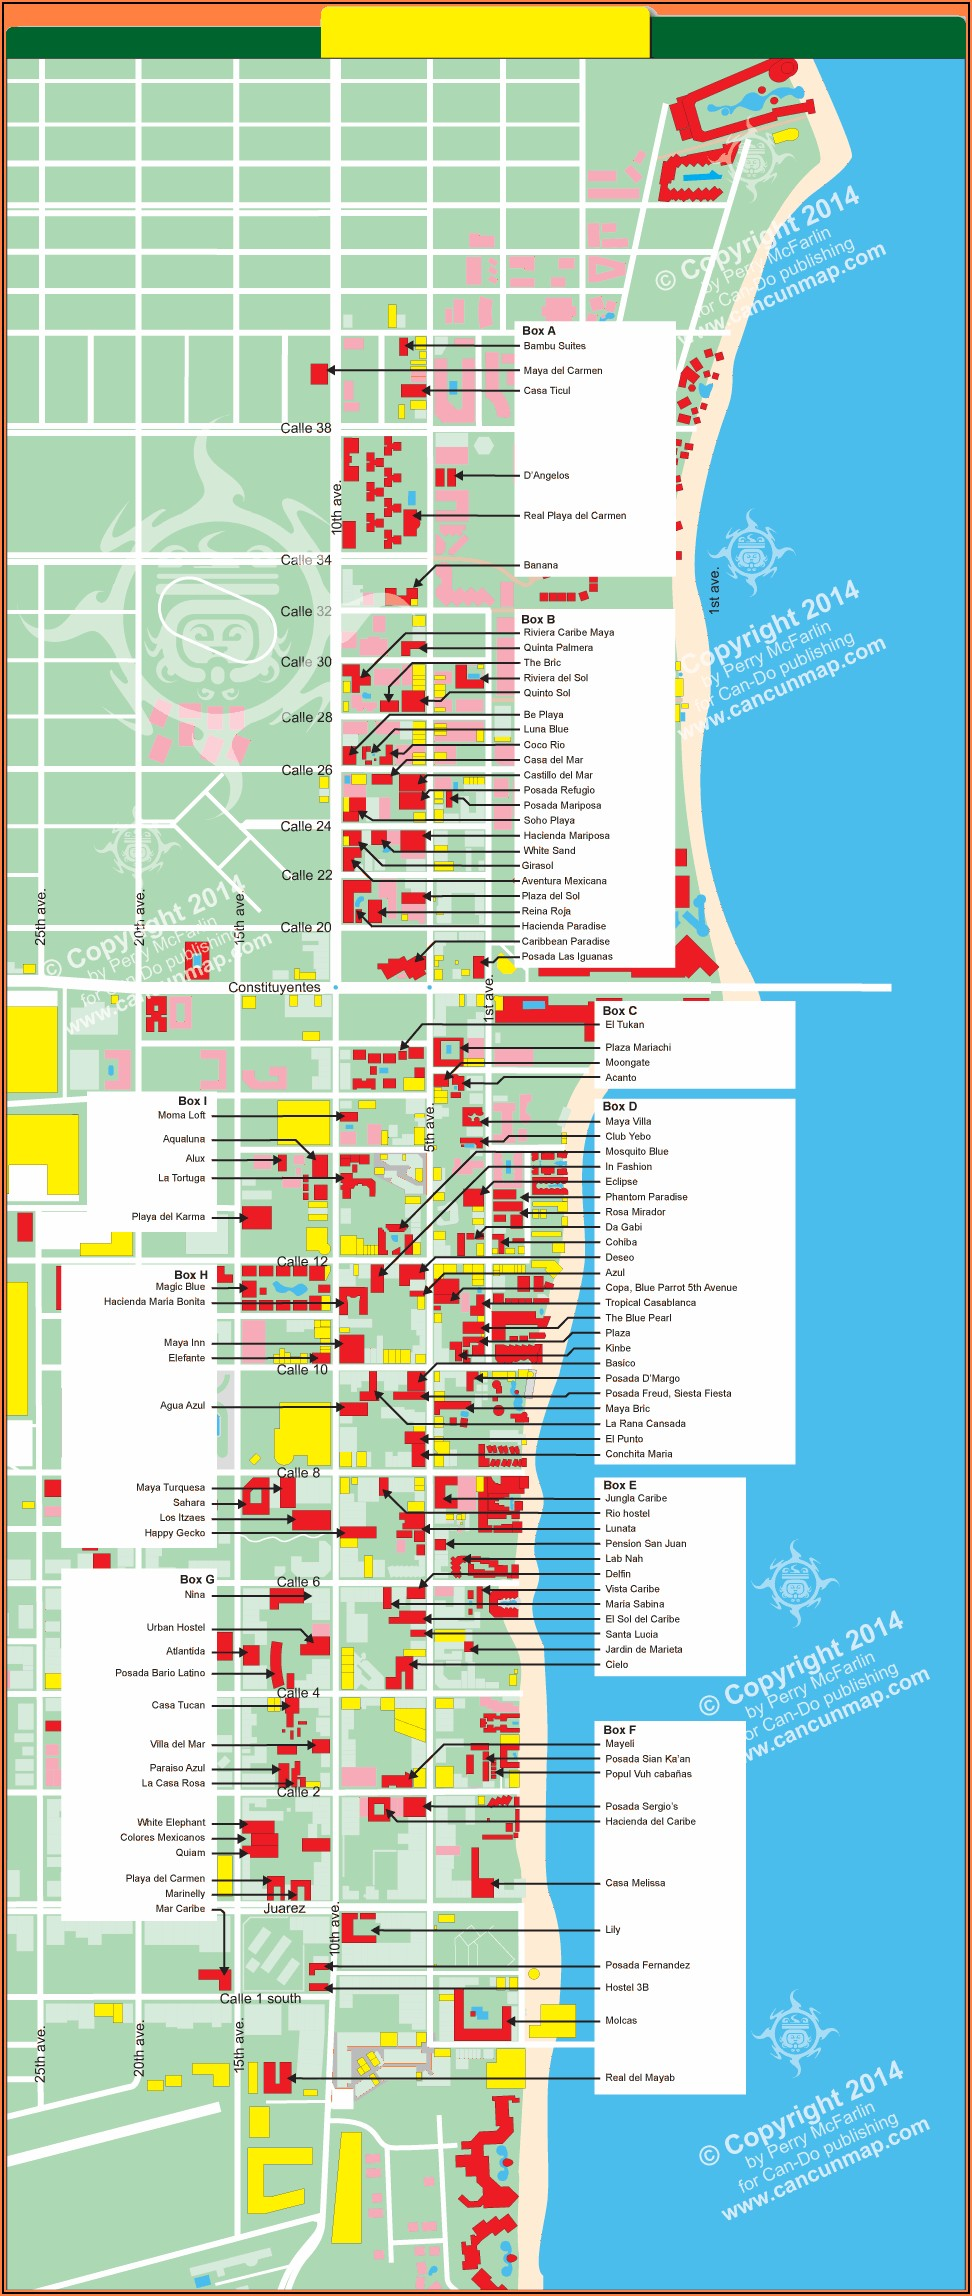 Playa Del Carmen Hotels On The Beach Map